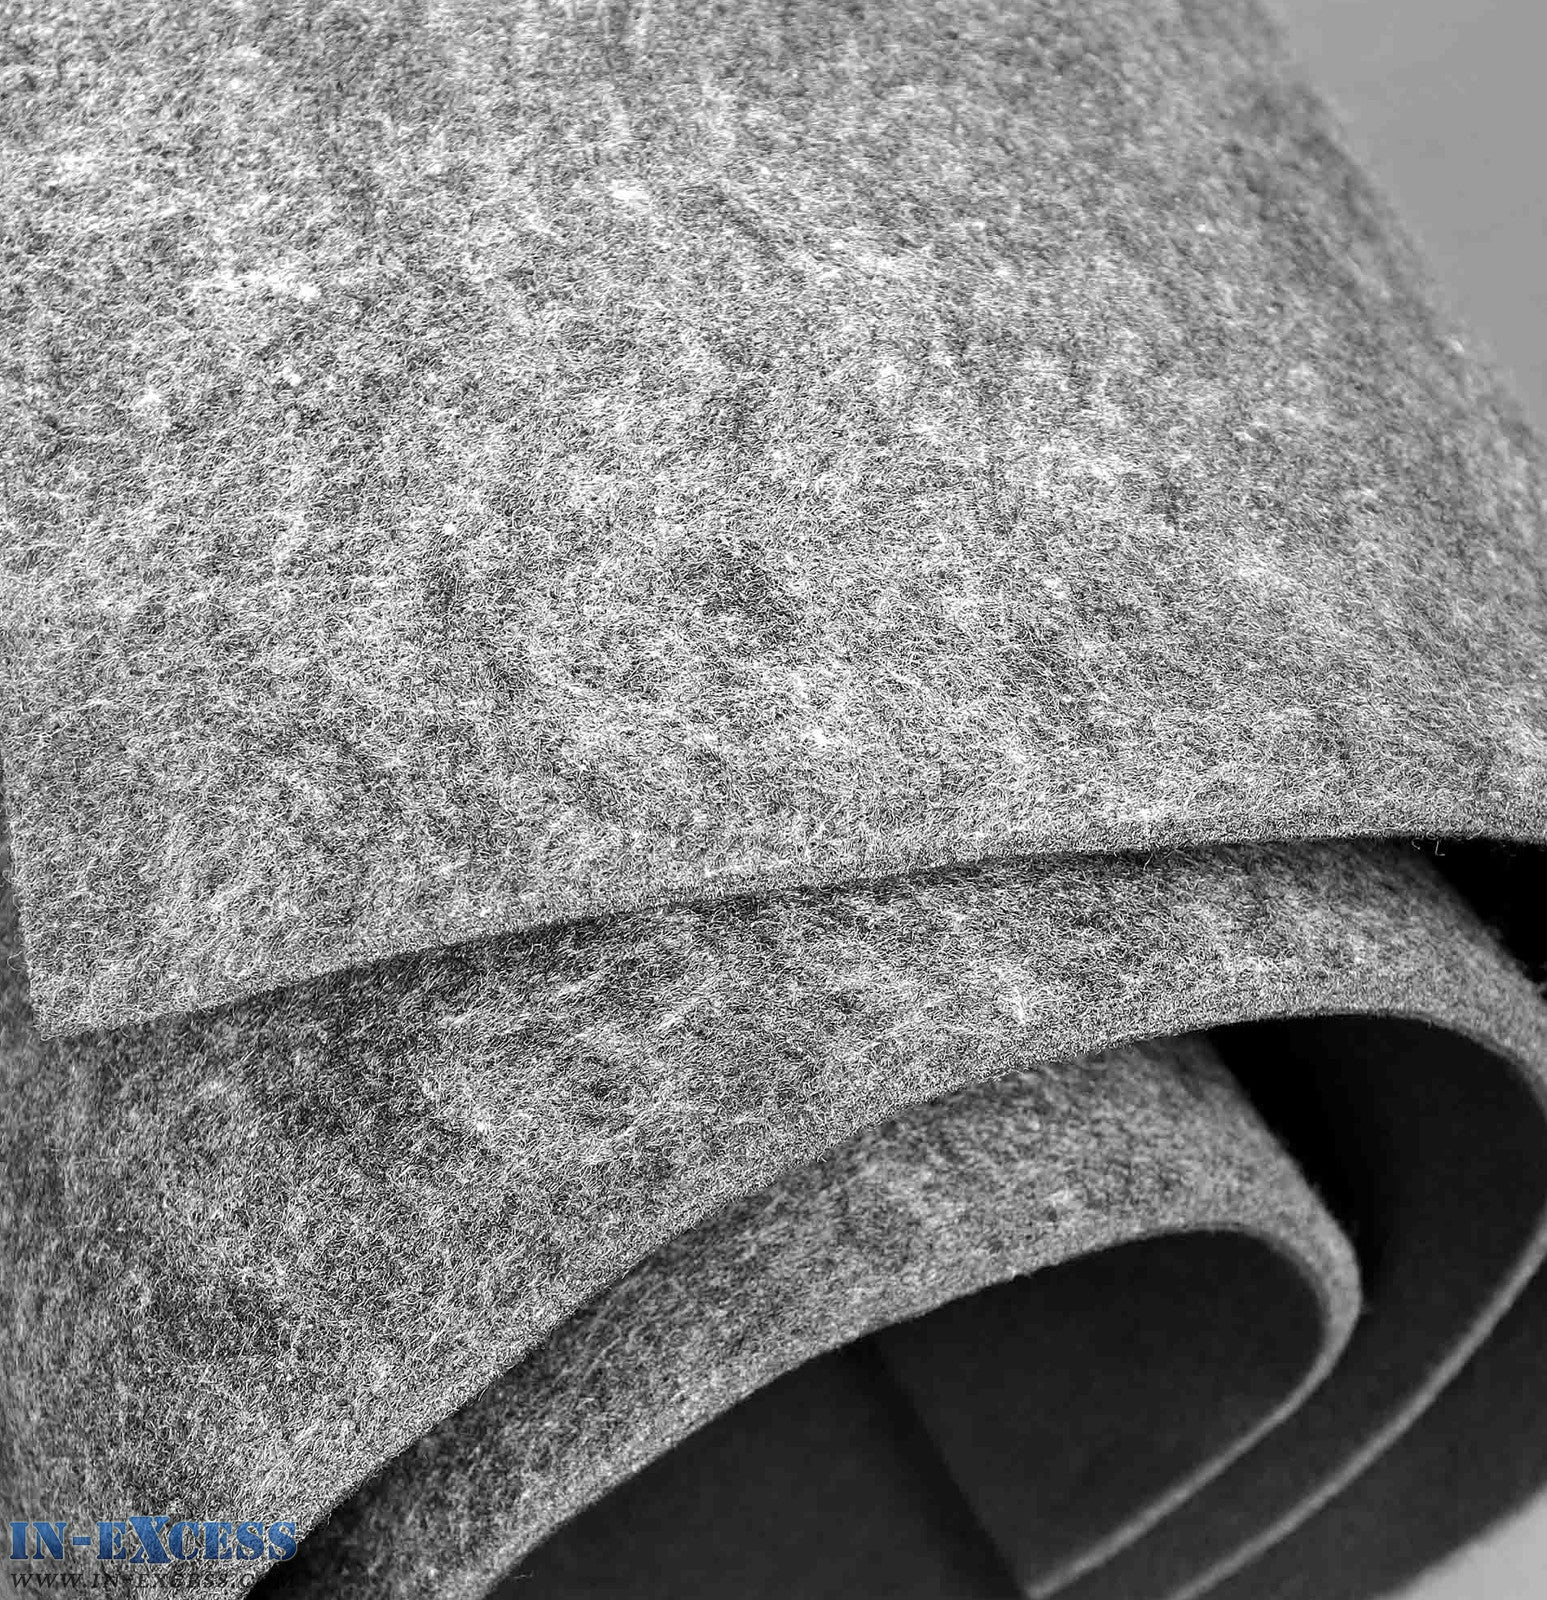 Soundproofing Under Felt Material Carpet Lining Insulation Car Van In Excess Direct